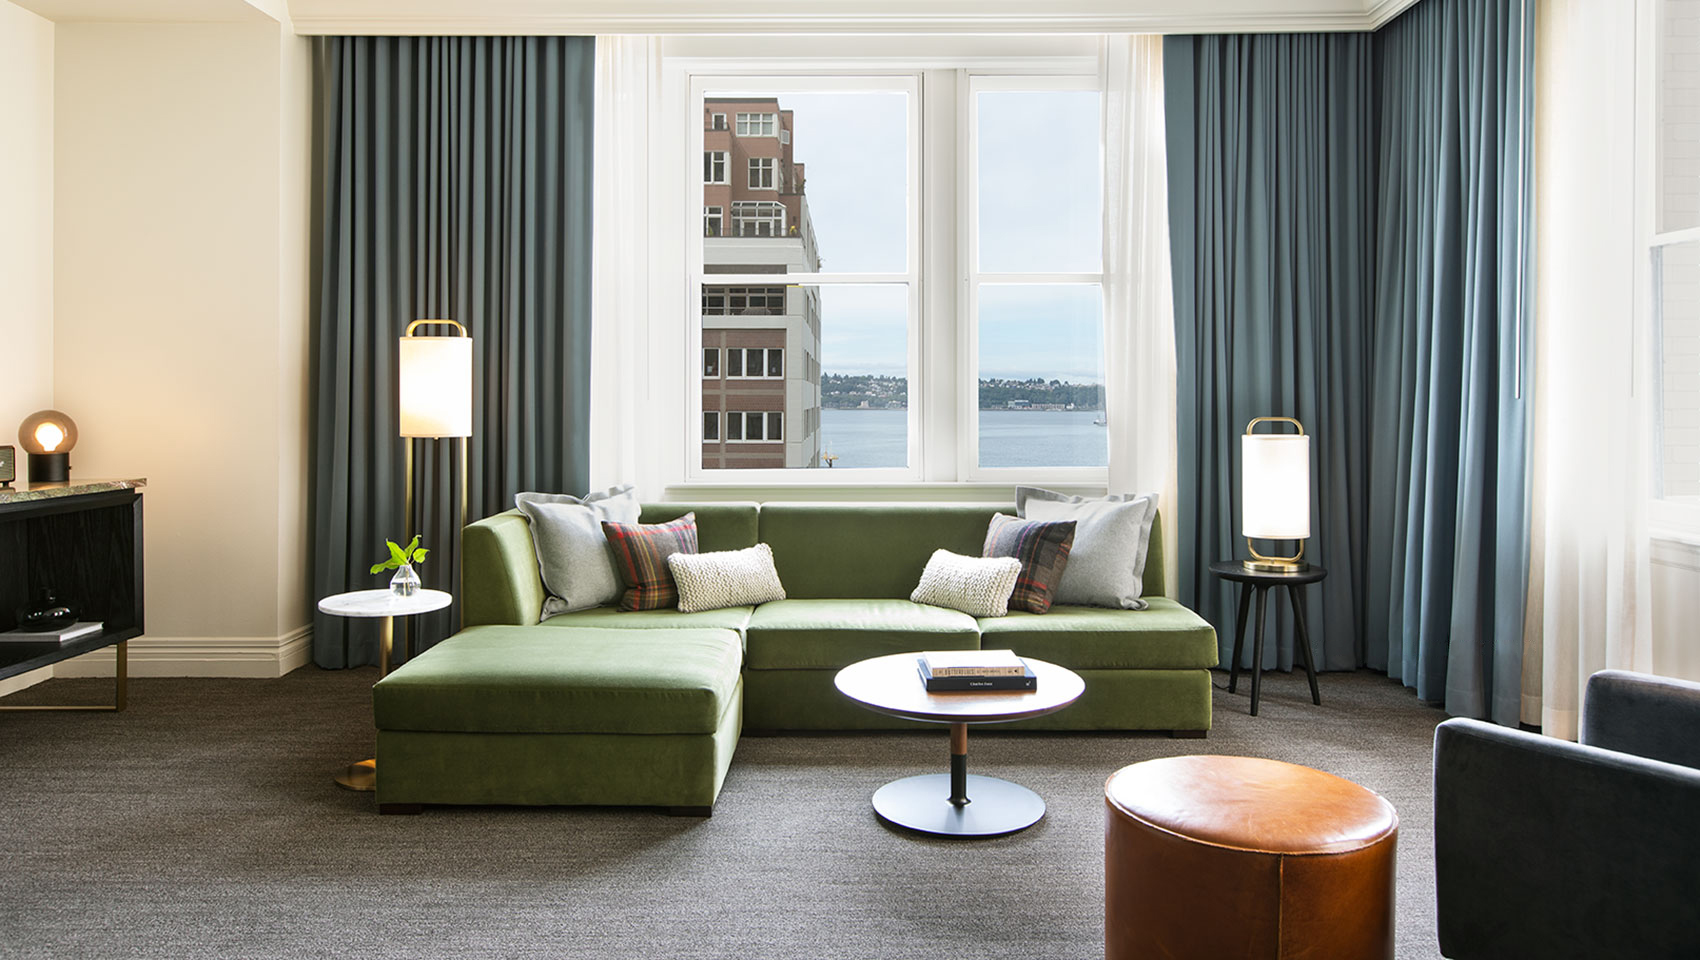 Kimpton Alexis Hotel in Seattle